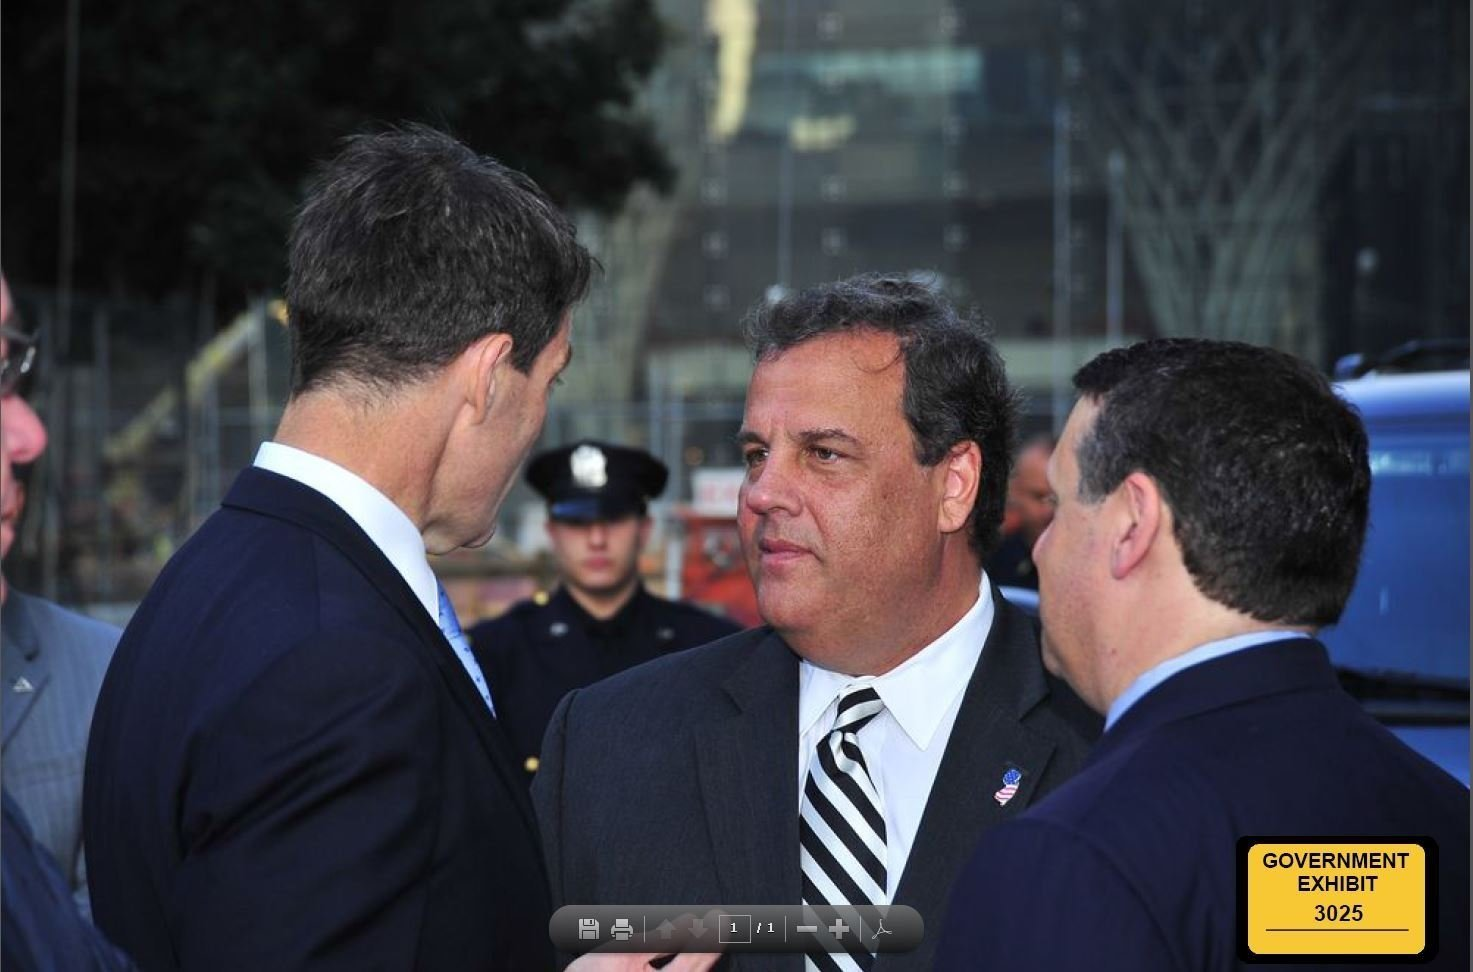 Chris Christie Was Told Of 'Bridgegate' Closures In Advance, Former Aide Says